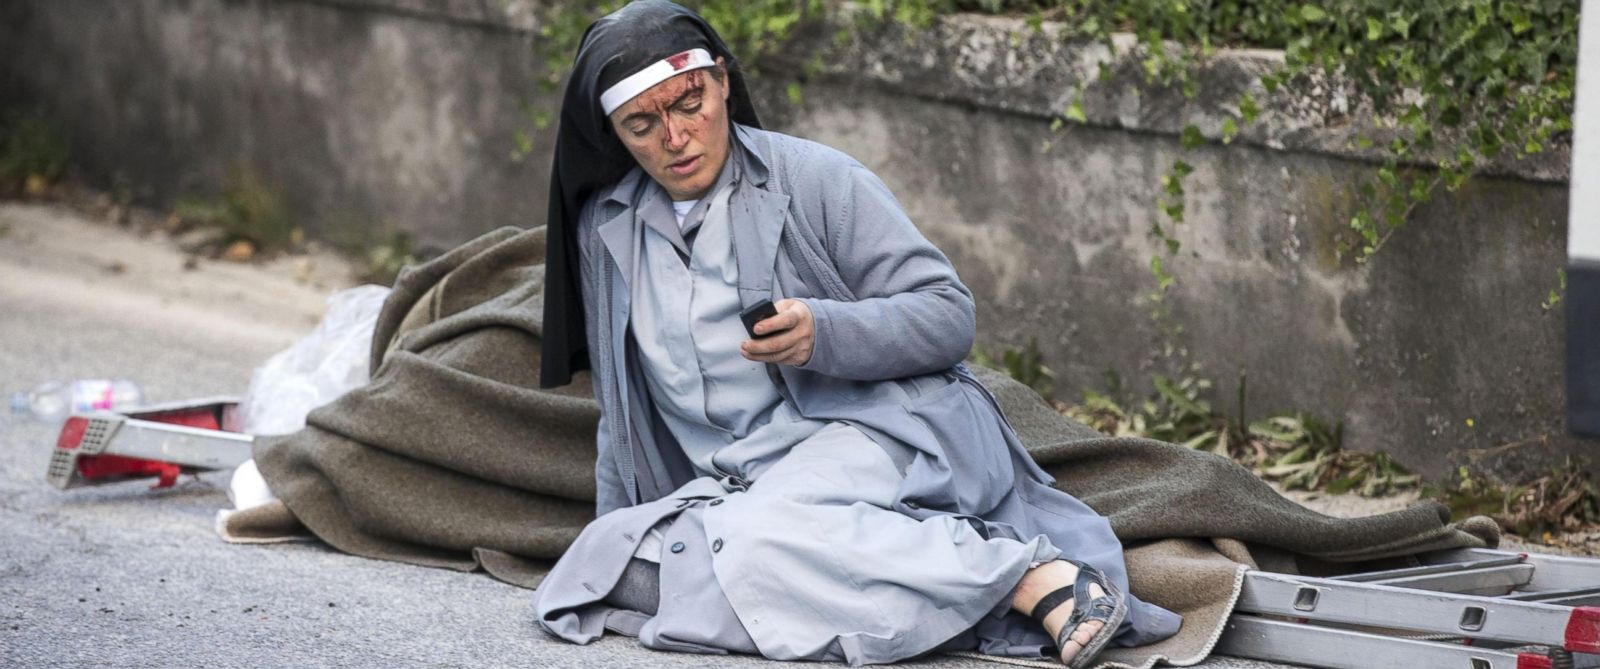 PHOTO: A nun checks her mobile phone as she lies near a ladder following an earthquake in Amatrice, Italy, Aug. 24, 2016.